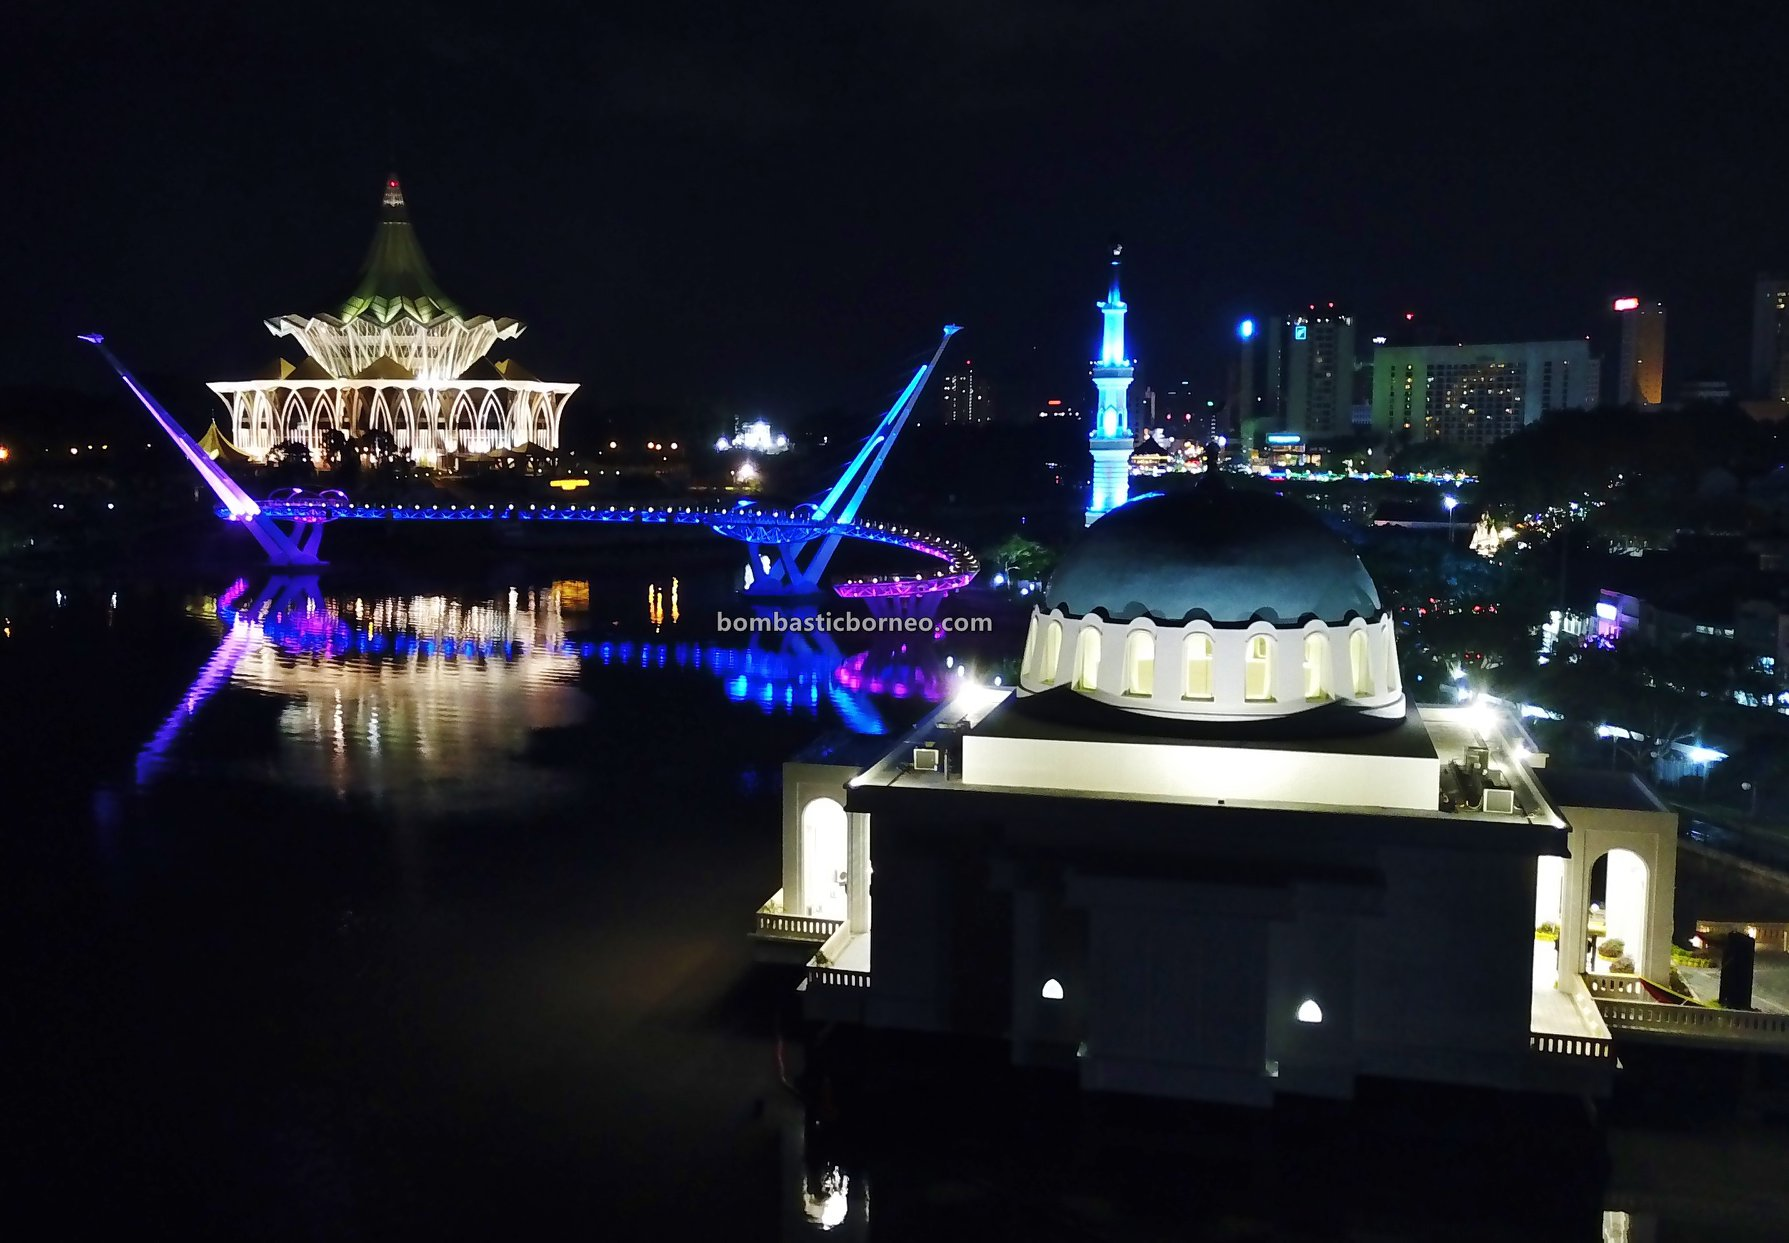 culture, Kuching Floating Mosque, Masjid Terapung, backpackers, destination, Borneo, Malaysia, S-shaped pedestrian bridge, Sarawak river, Obyek Wisata, Tourism, travel guide, Tourist attraction, 古晋步行桥, 砂拉越河滨公园, 马来西亚旅游景点